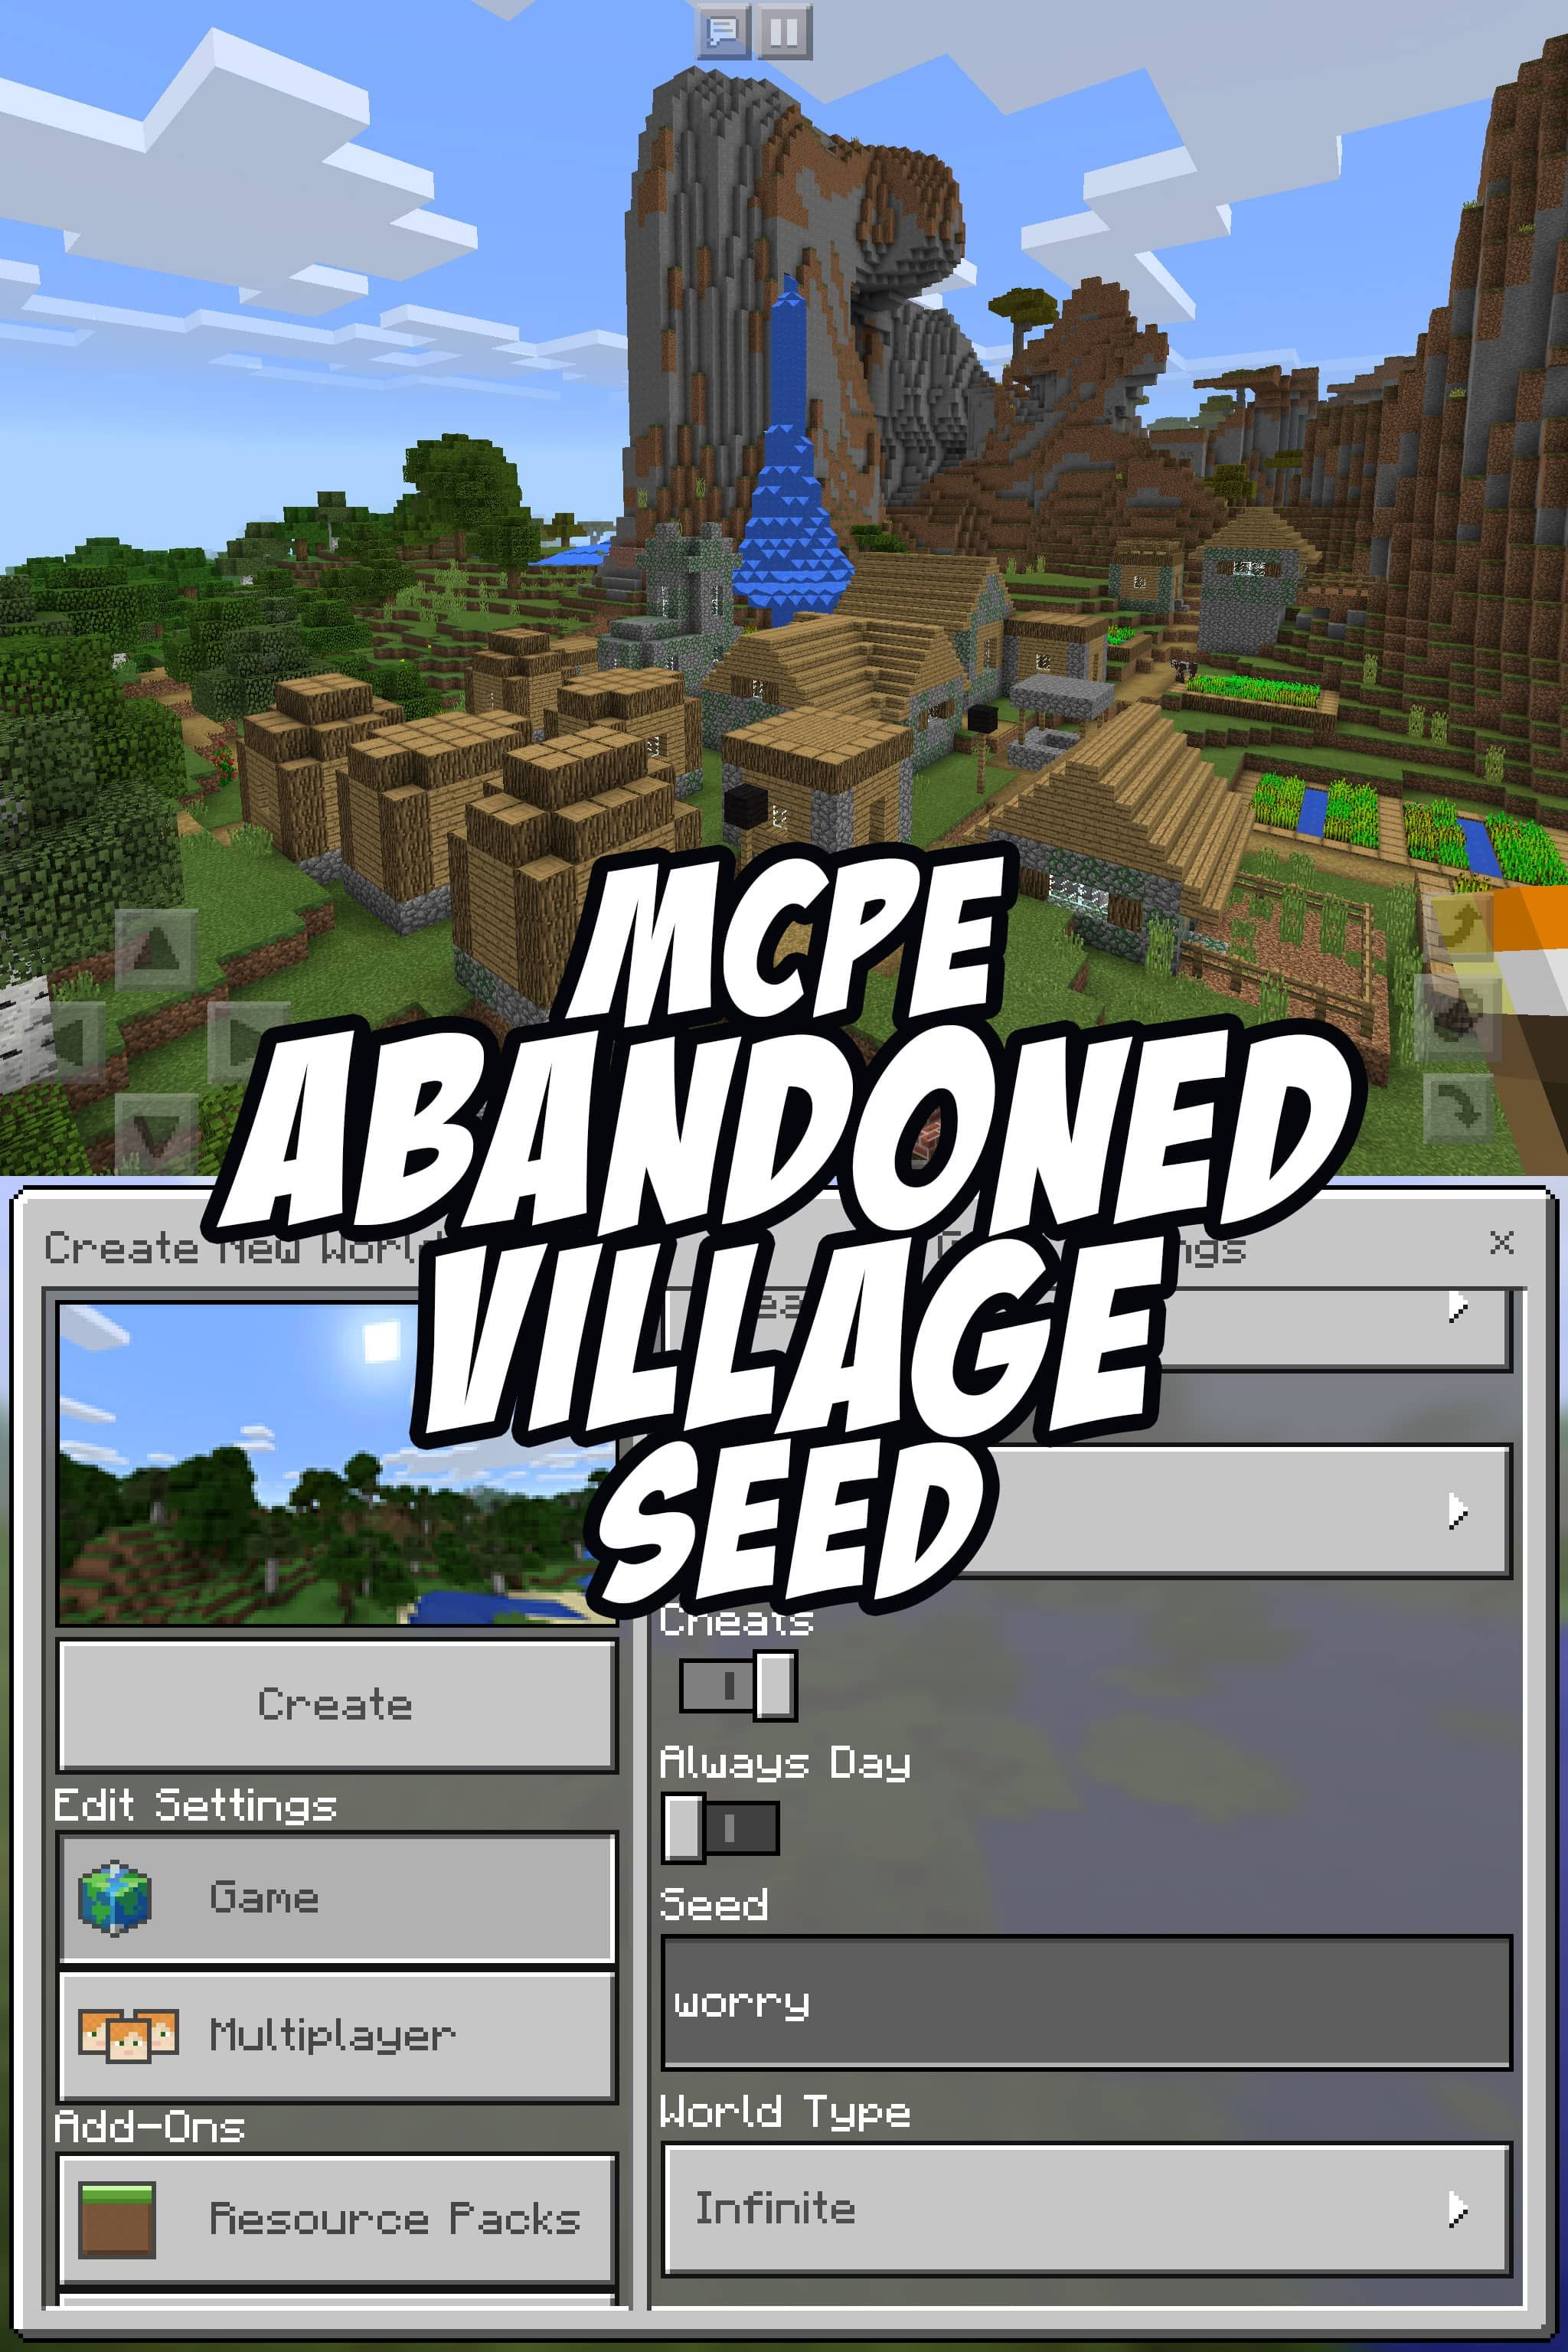 The large zombie-infected village by game spawn has been abandoned